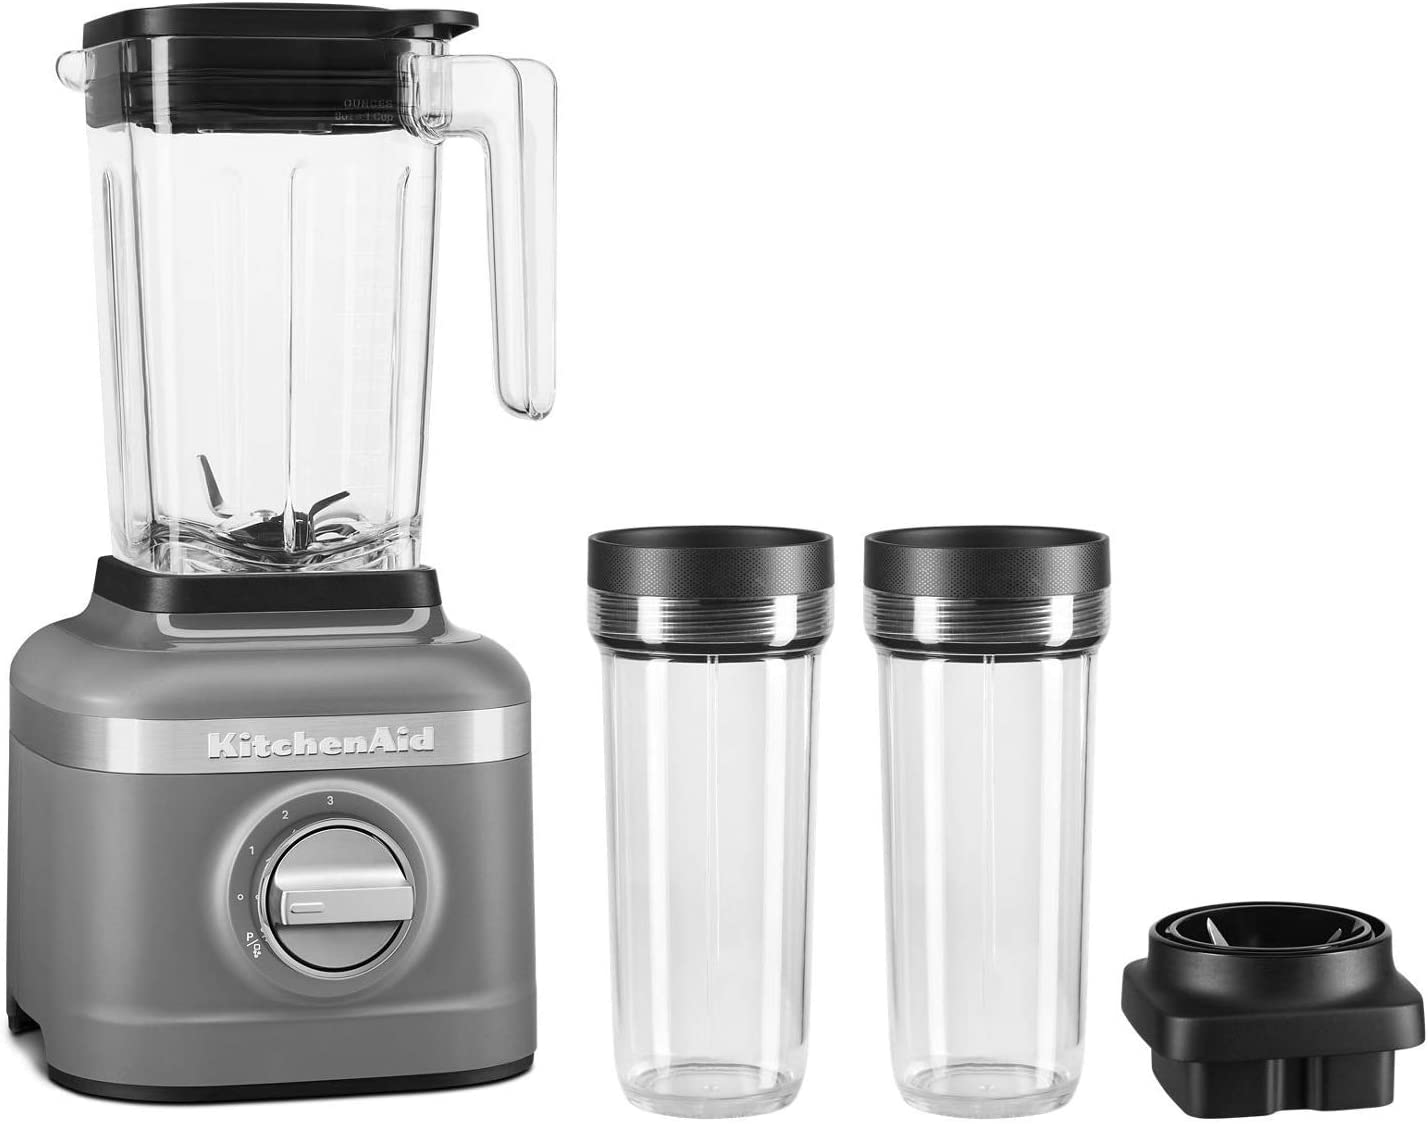 KitchenAid KSB1332DG 48oz, 3 Speed Ice Crushing Blender with 2 x 16oz Personal Jars to Blend and Go, Matte Charcoal Grey